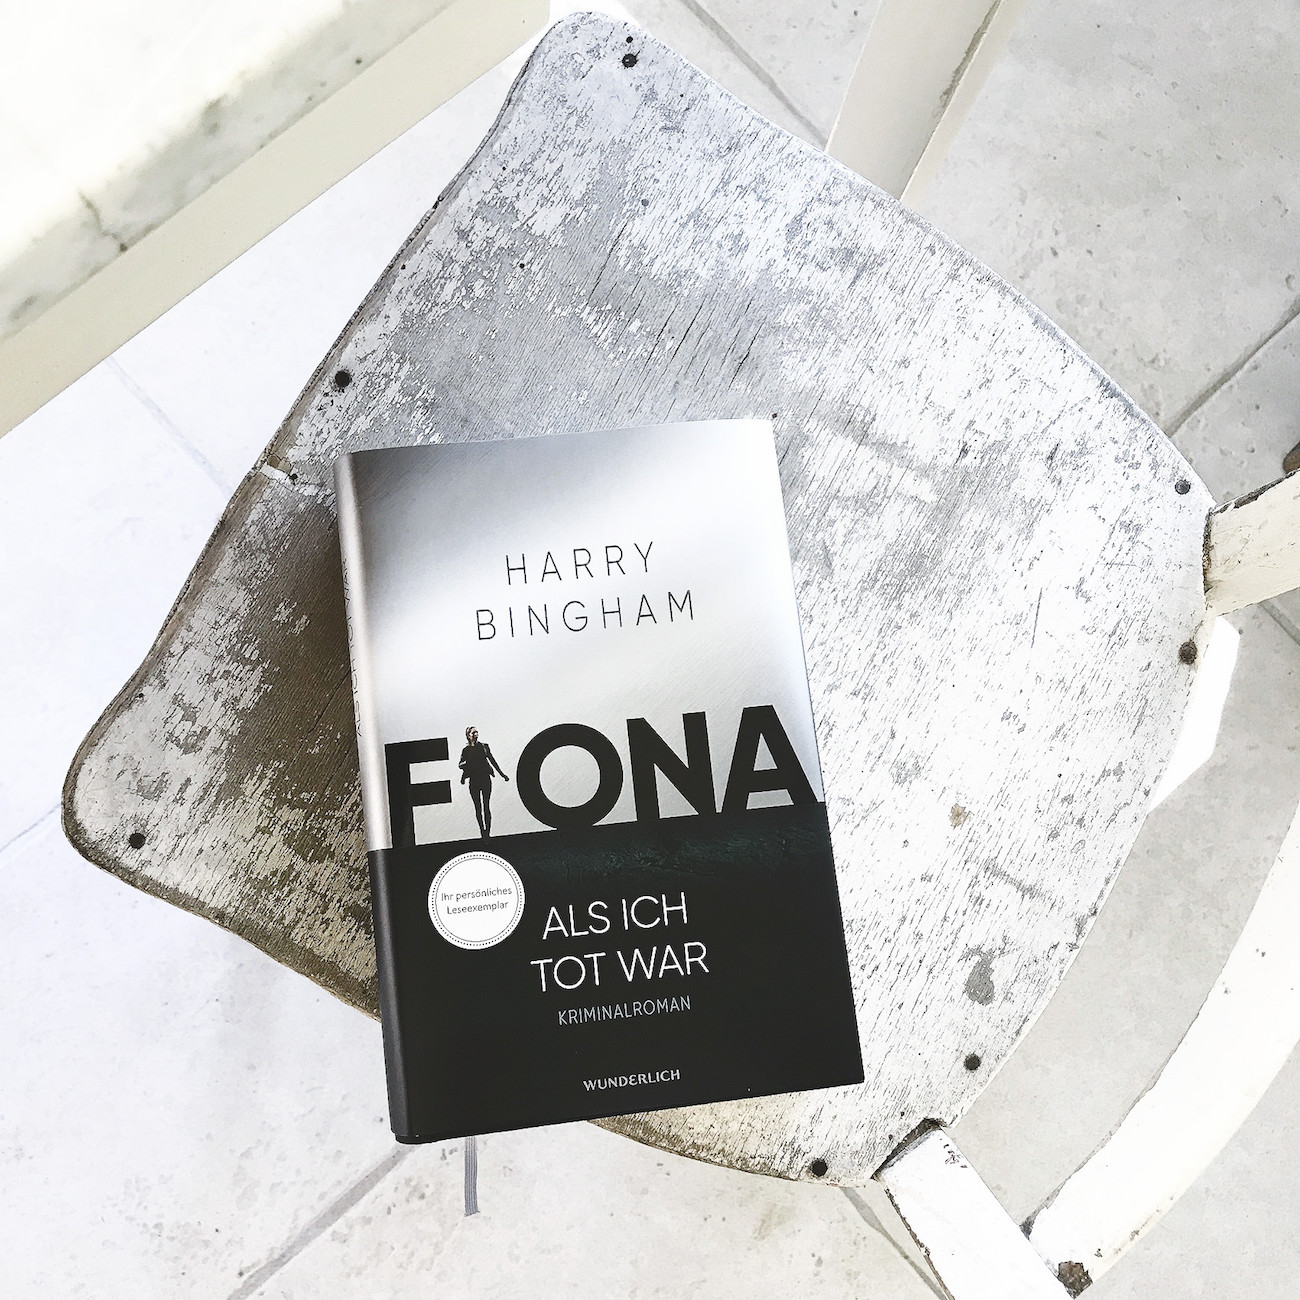 Harry Bingham - Fiona. Als ich tot war